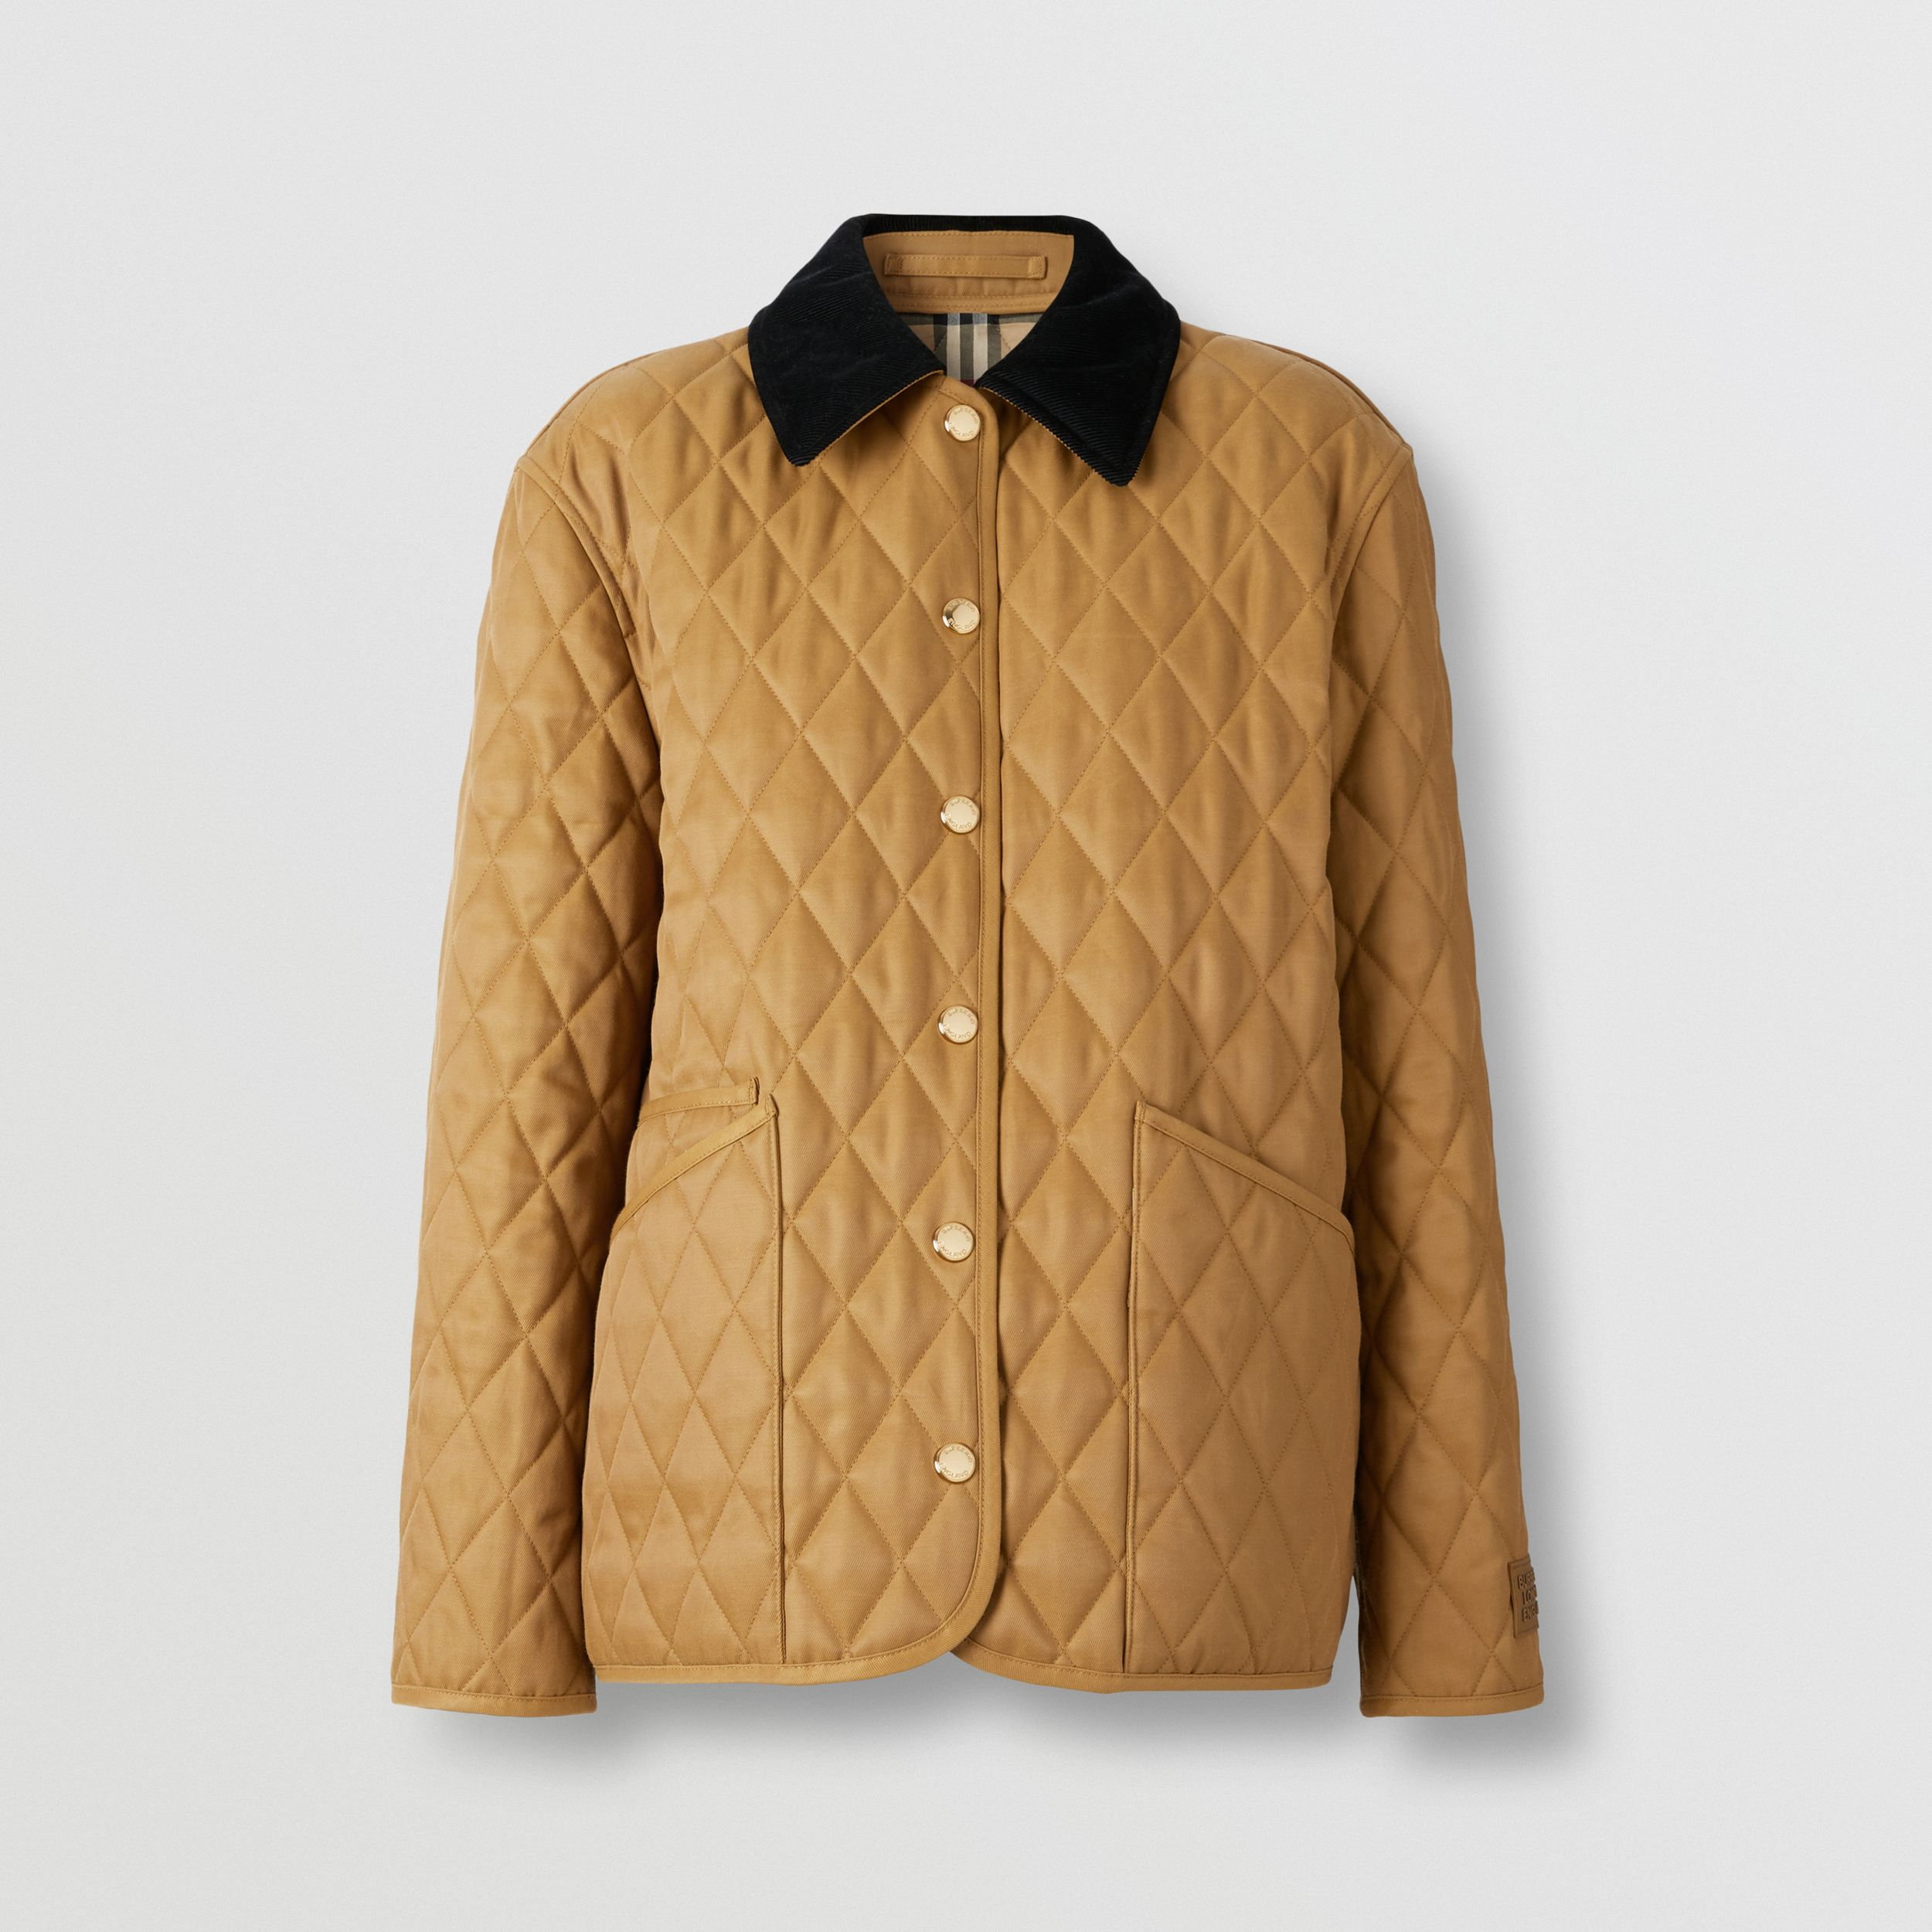 Corduroy Collar Diamond Quilted Jacket in Camel - Women | Burberry Hong Kong S.A.R. - 4